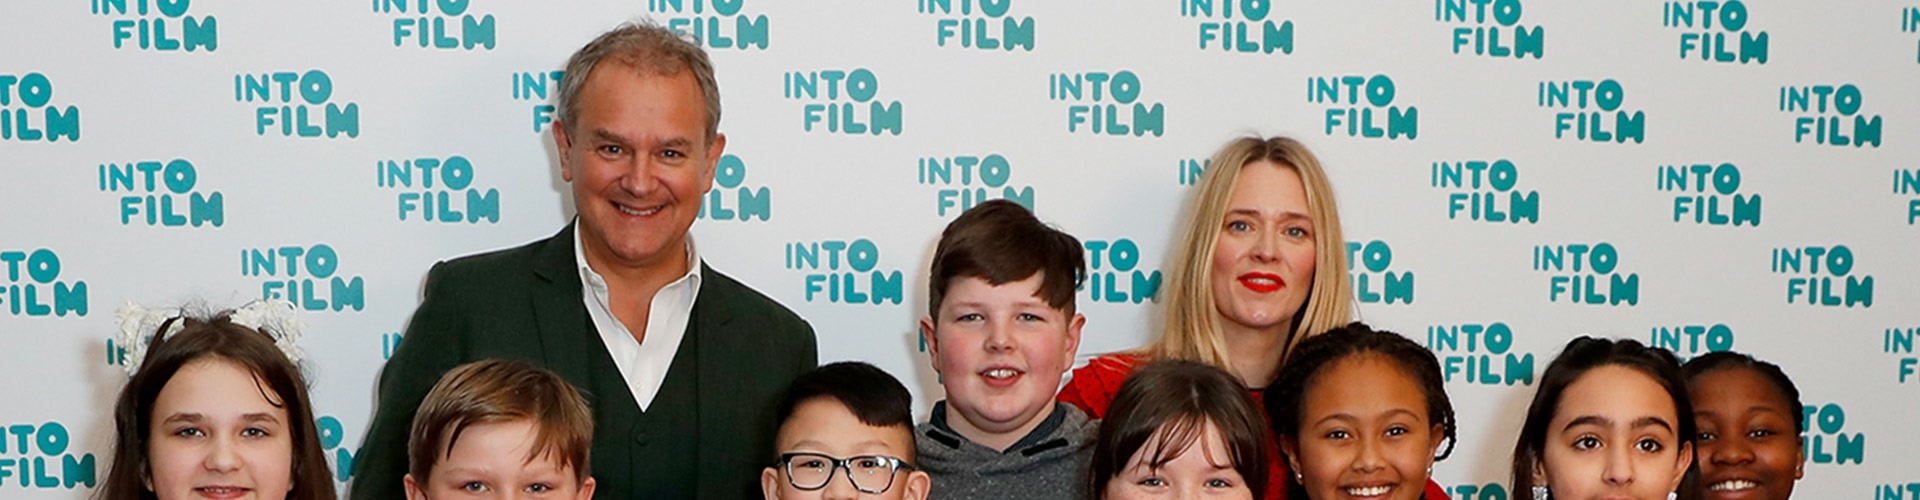 Watch Into Film Awards 2019: Highlights Online